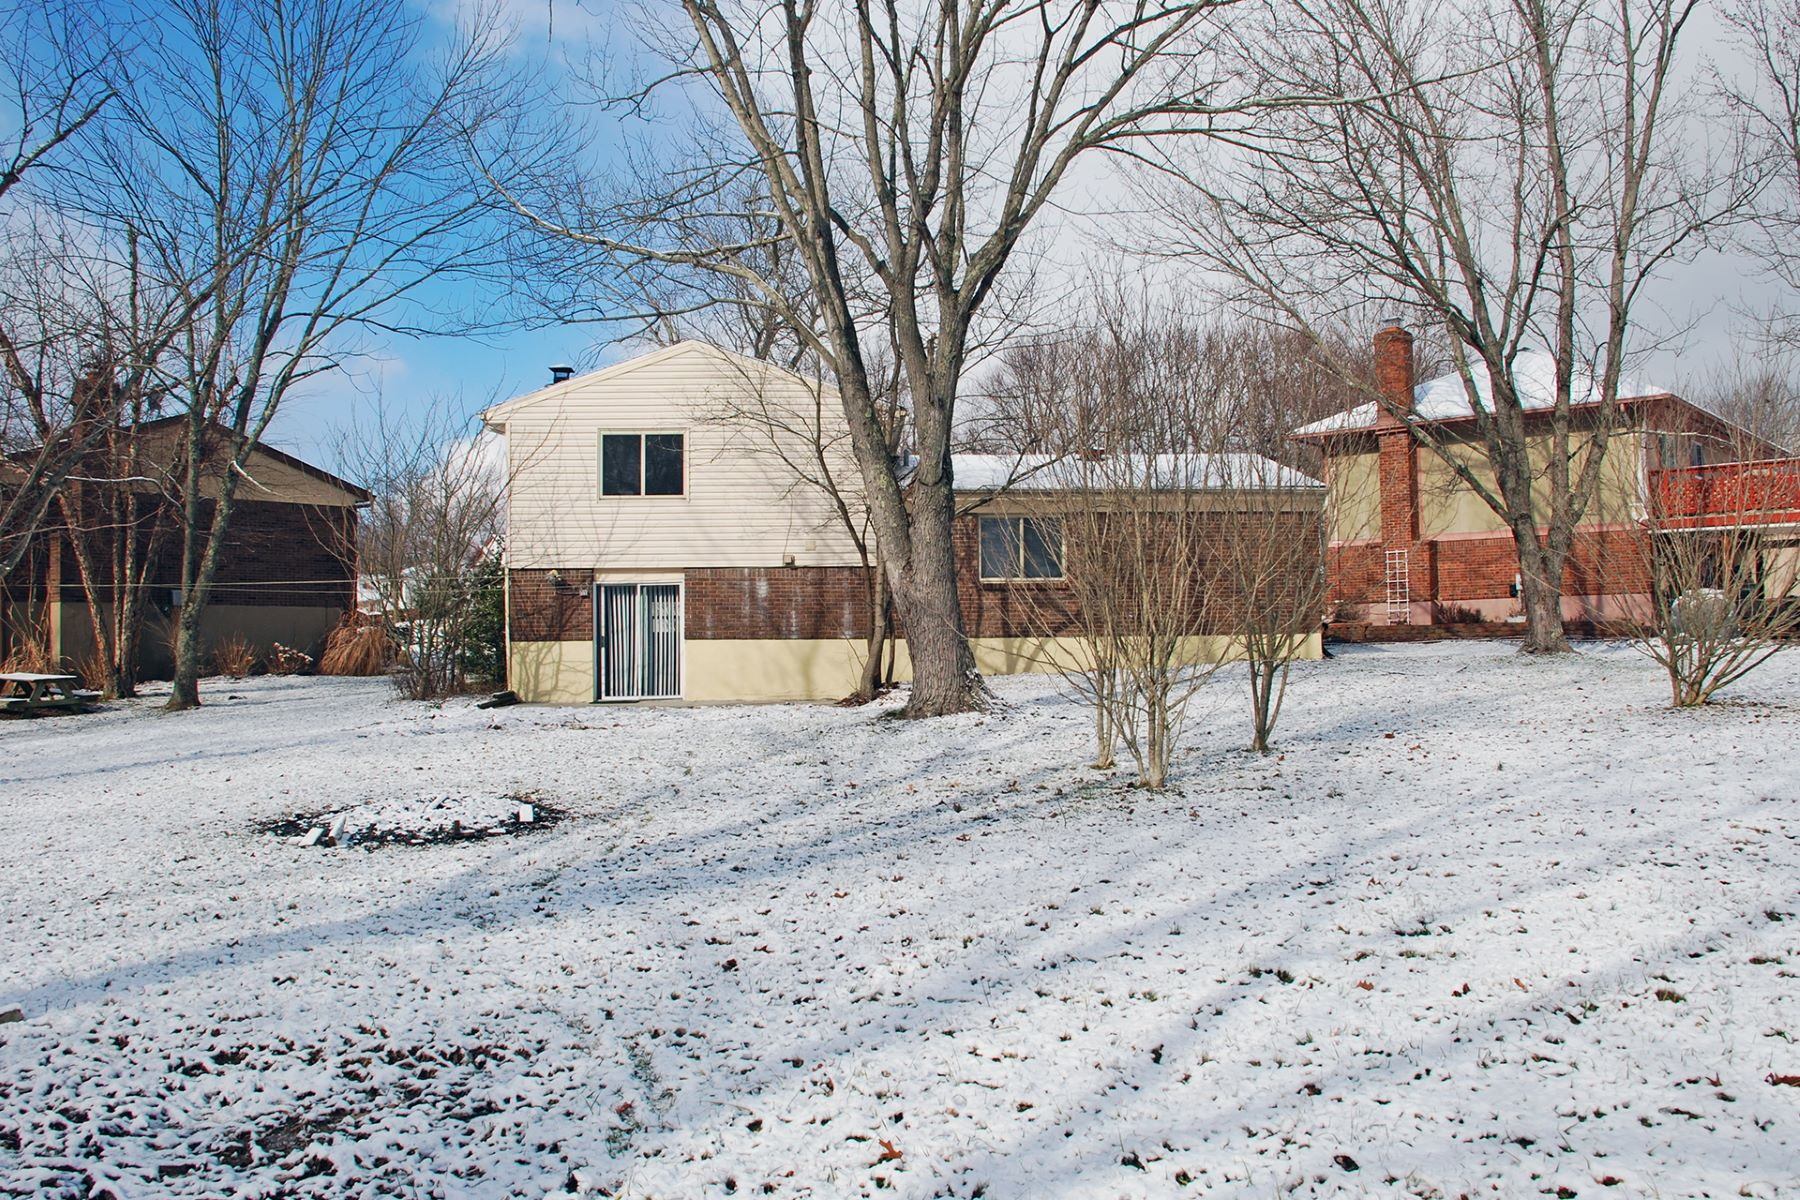 Single Family Home for Sale at Delightful updated home on a cul-de-sac 7796 Oakridge Court Florence, Kentucky 41042 United States